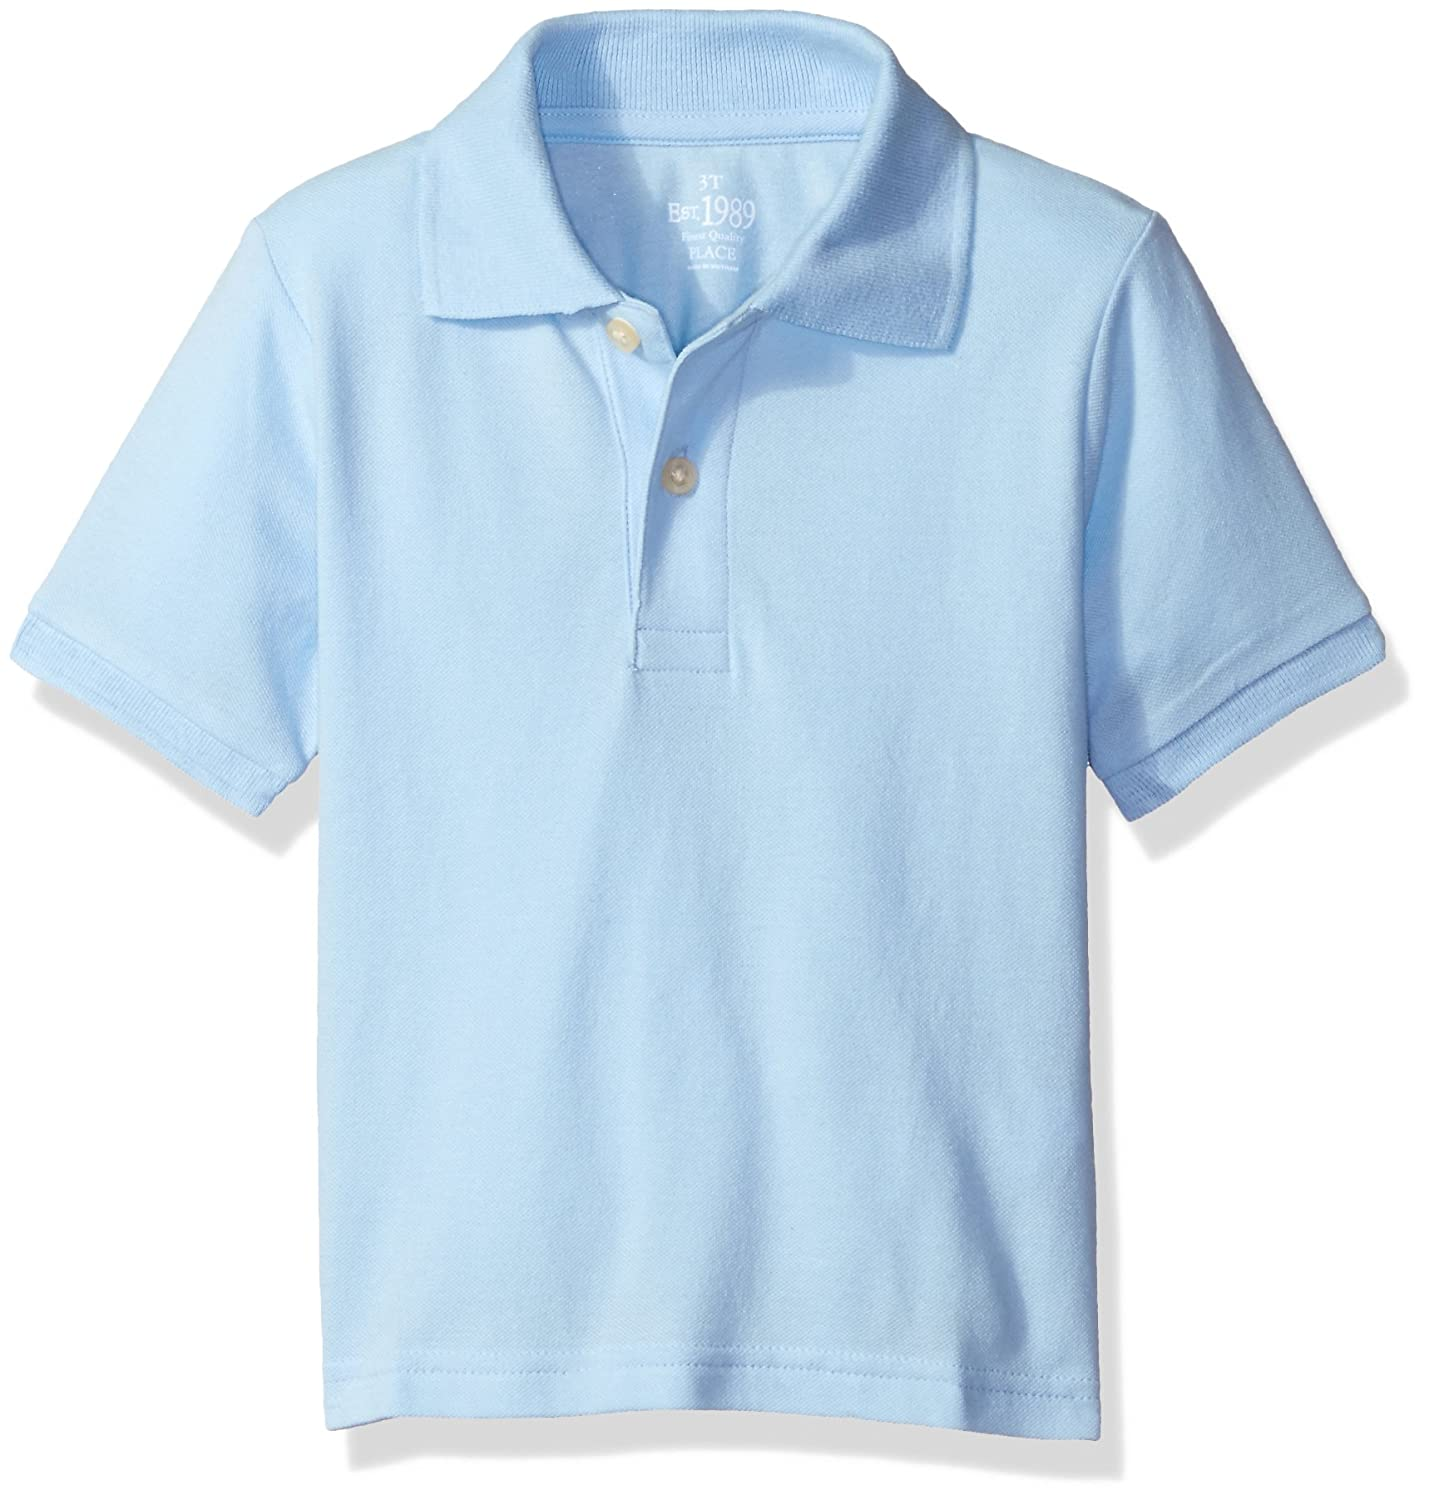 The Childrens Place Baby Boys Short Sleeve Uniform Polo